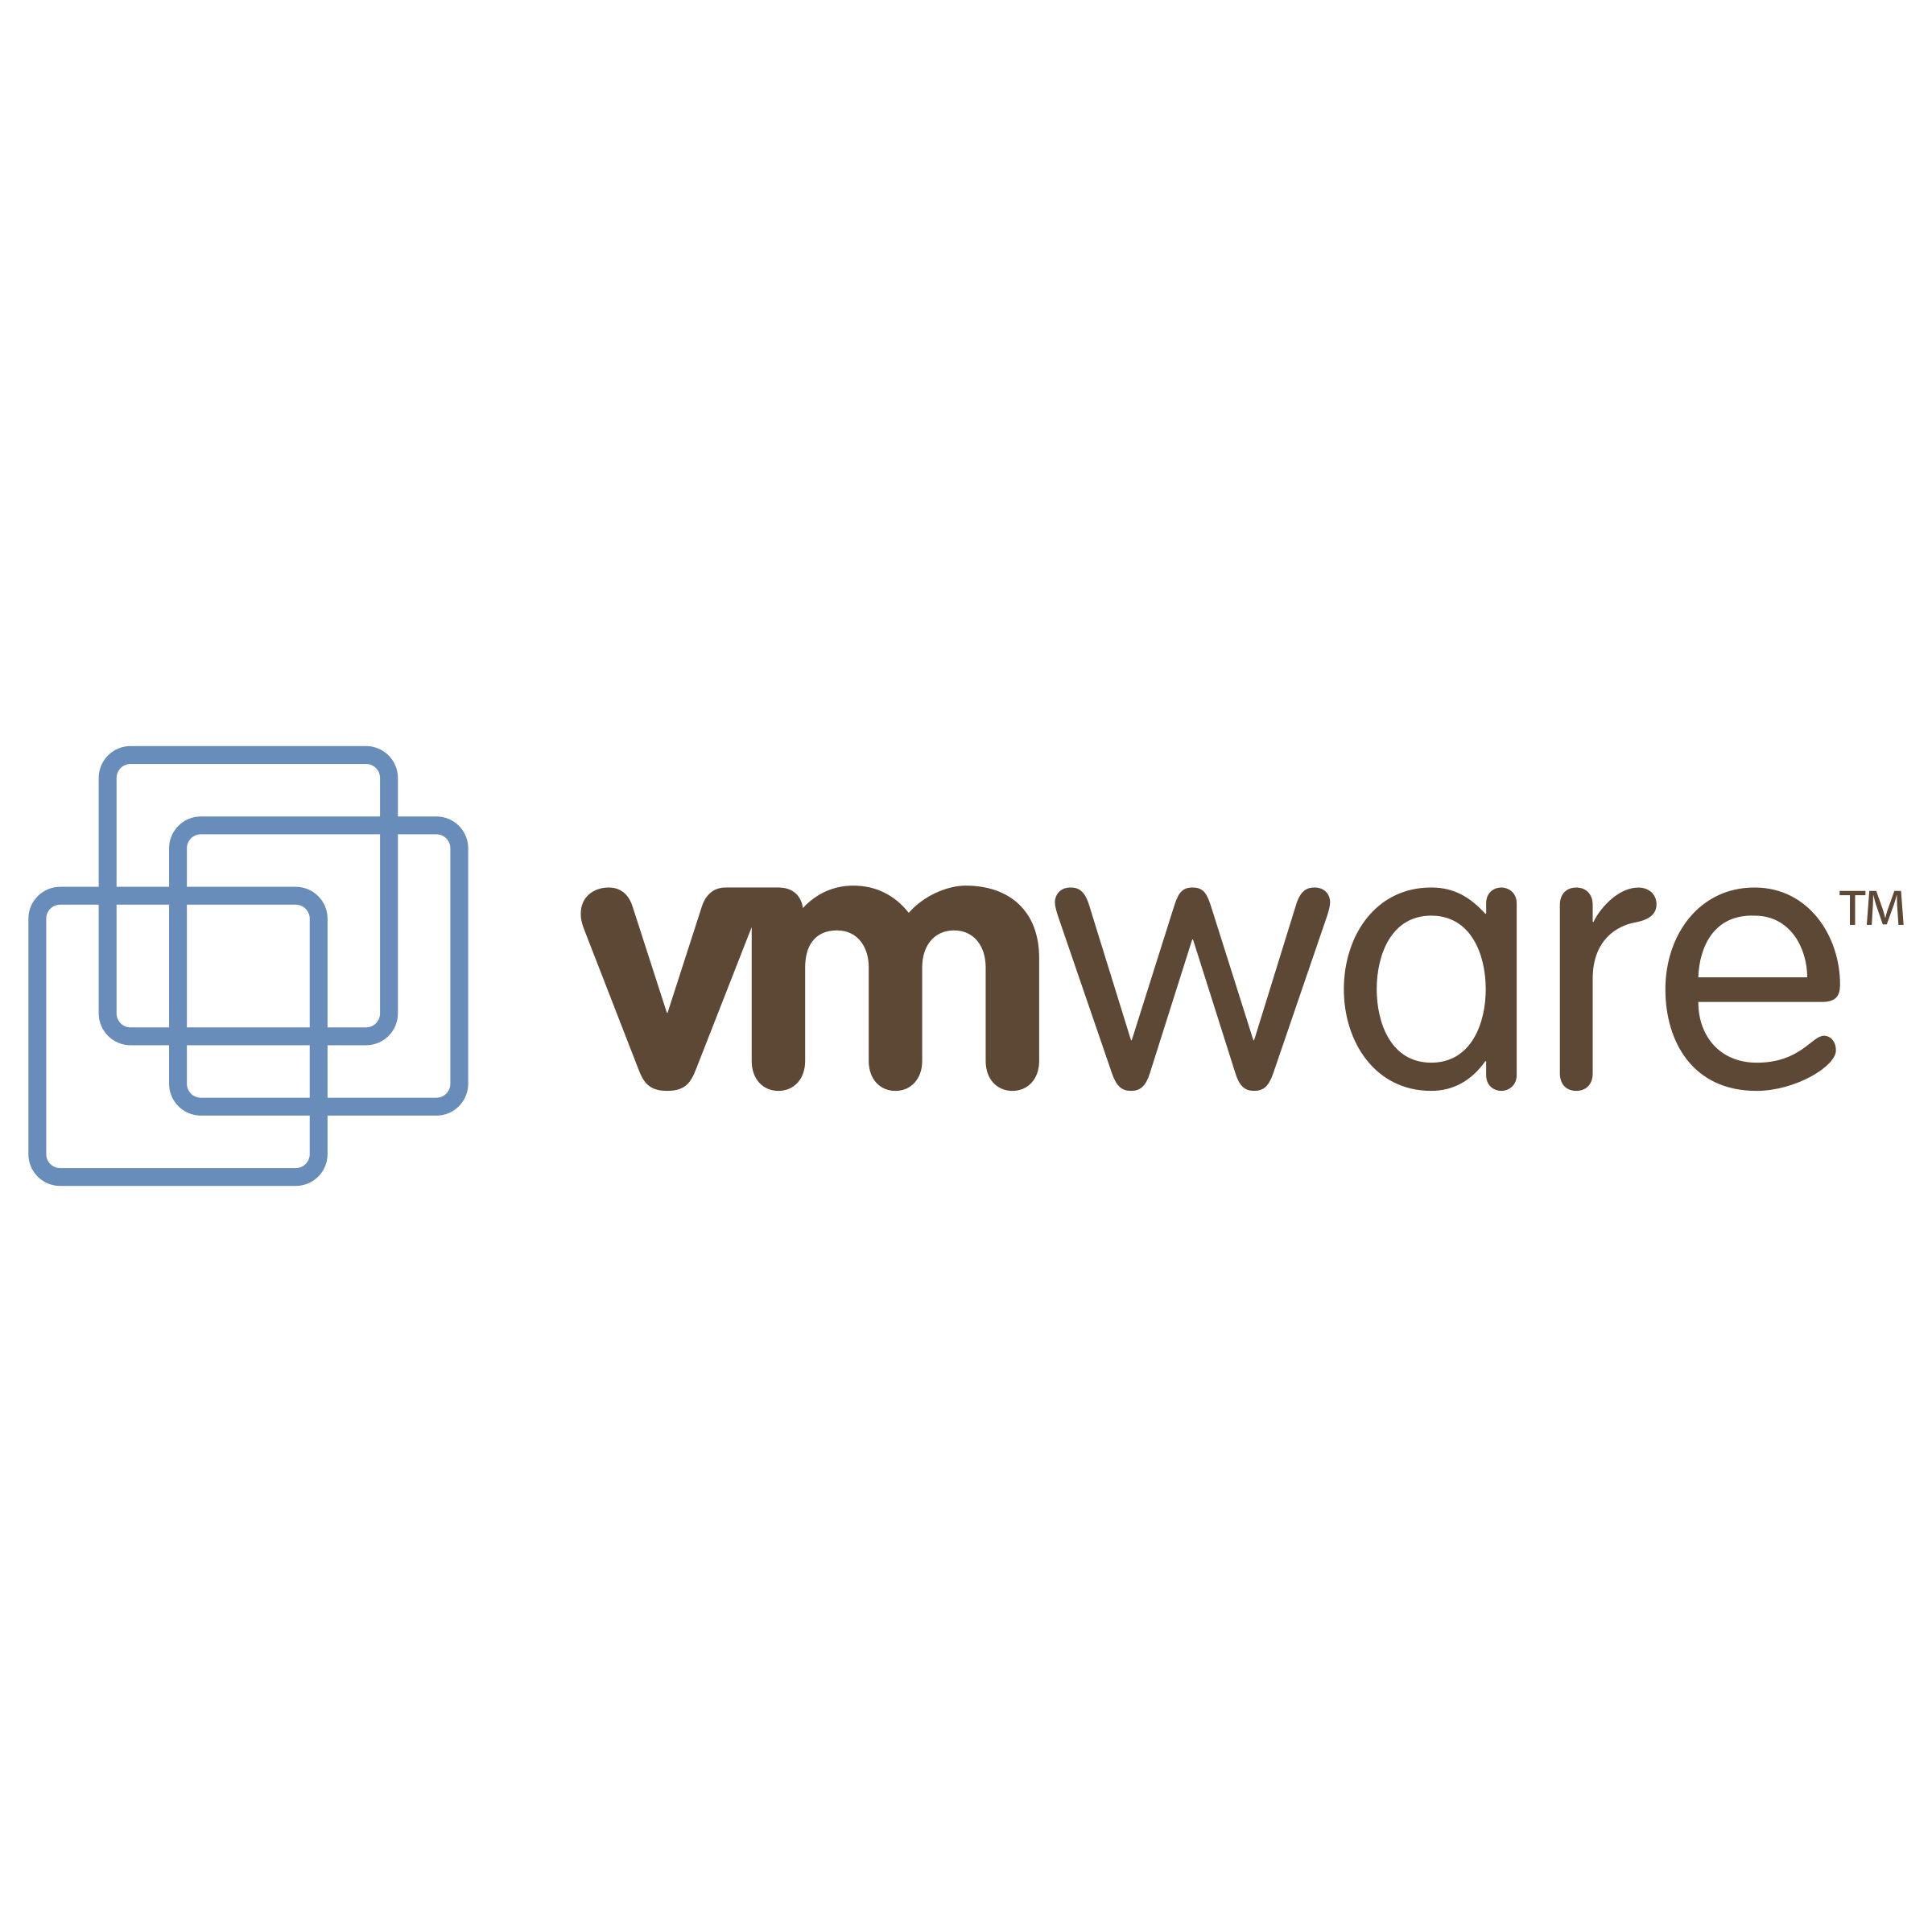 vmware-logo-png-transparent